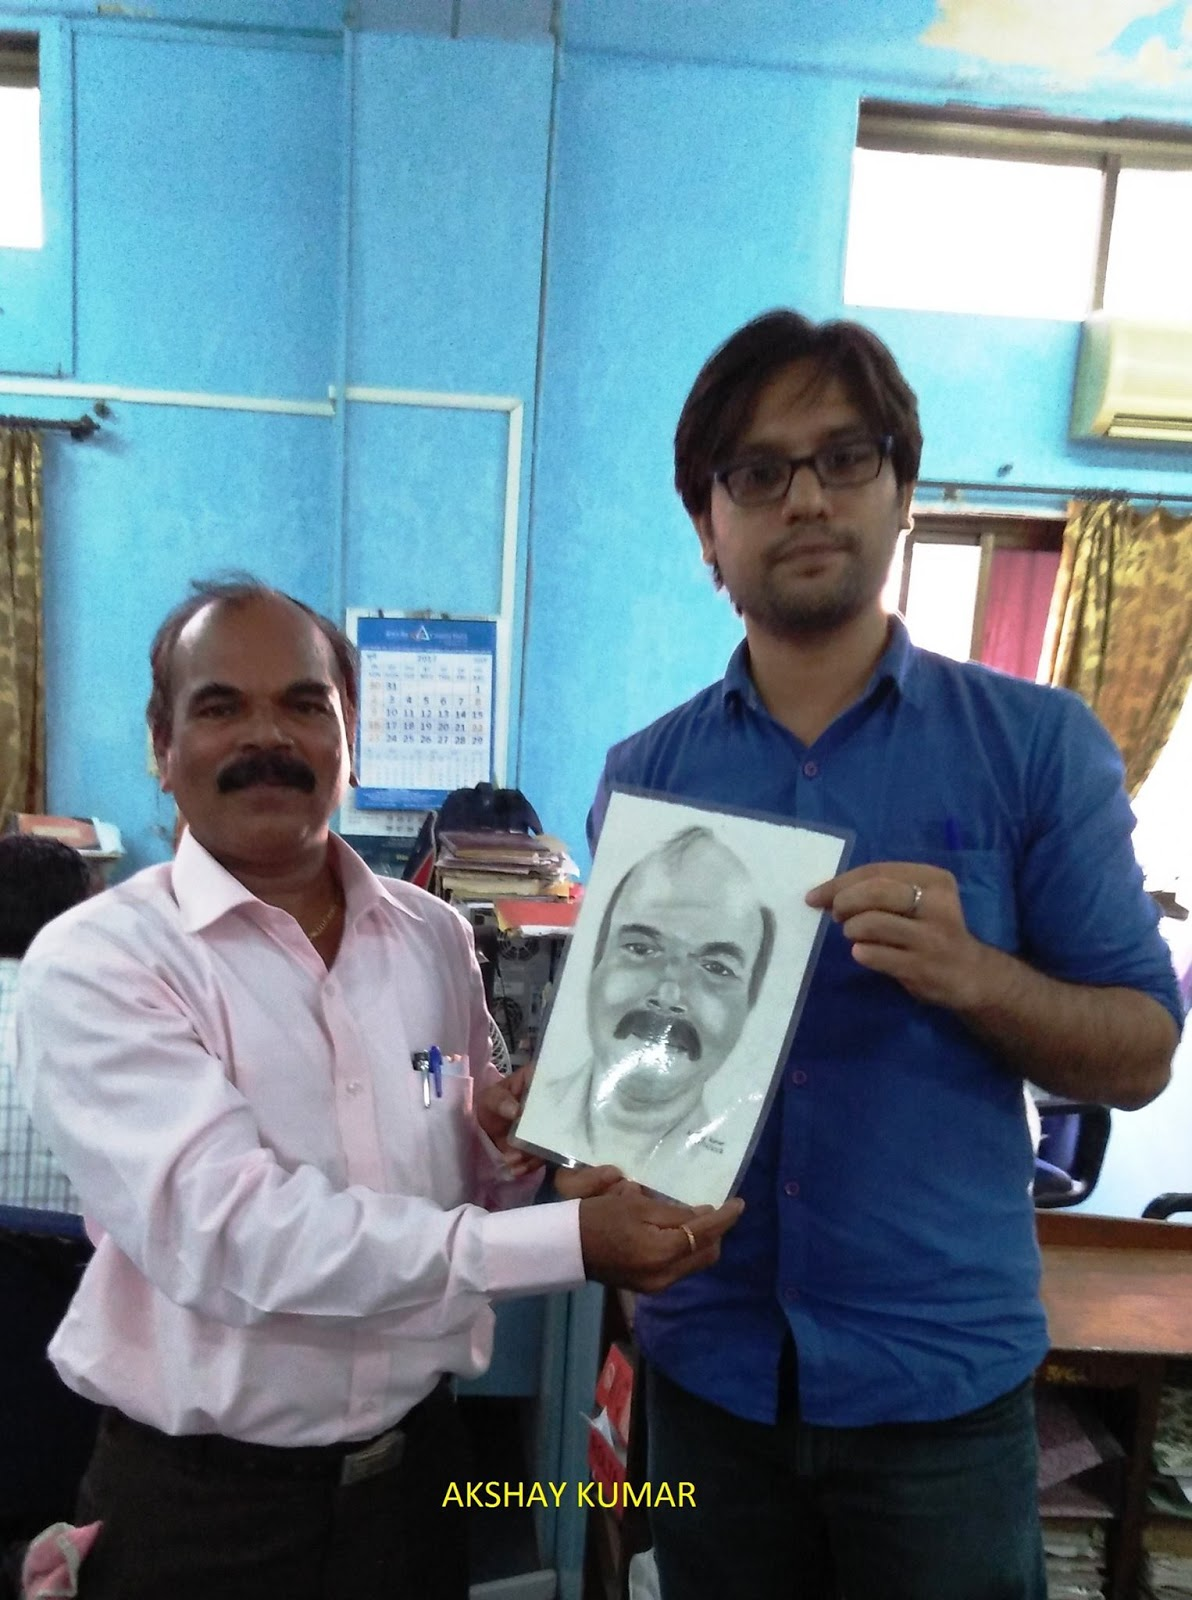 Pencil sketch drawing of shri s k shinde from mumbai by akshay kumar